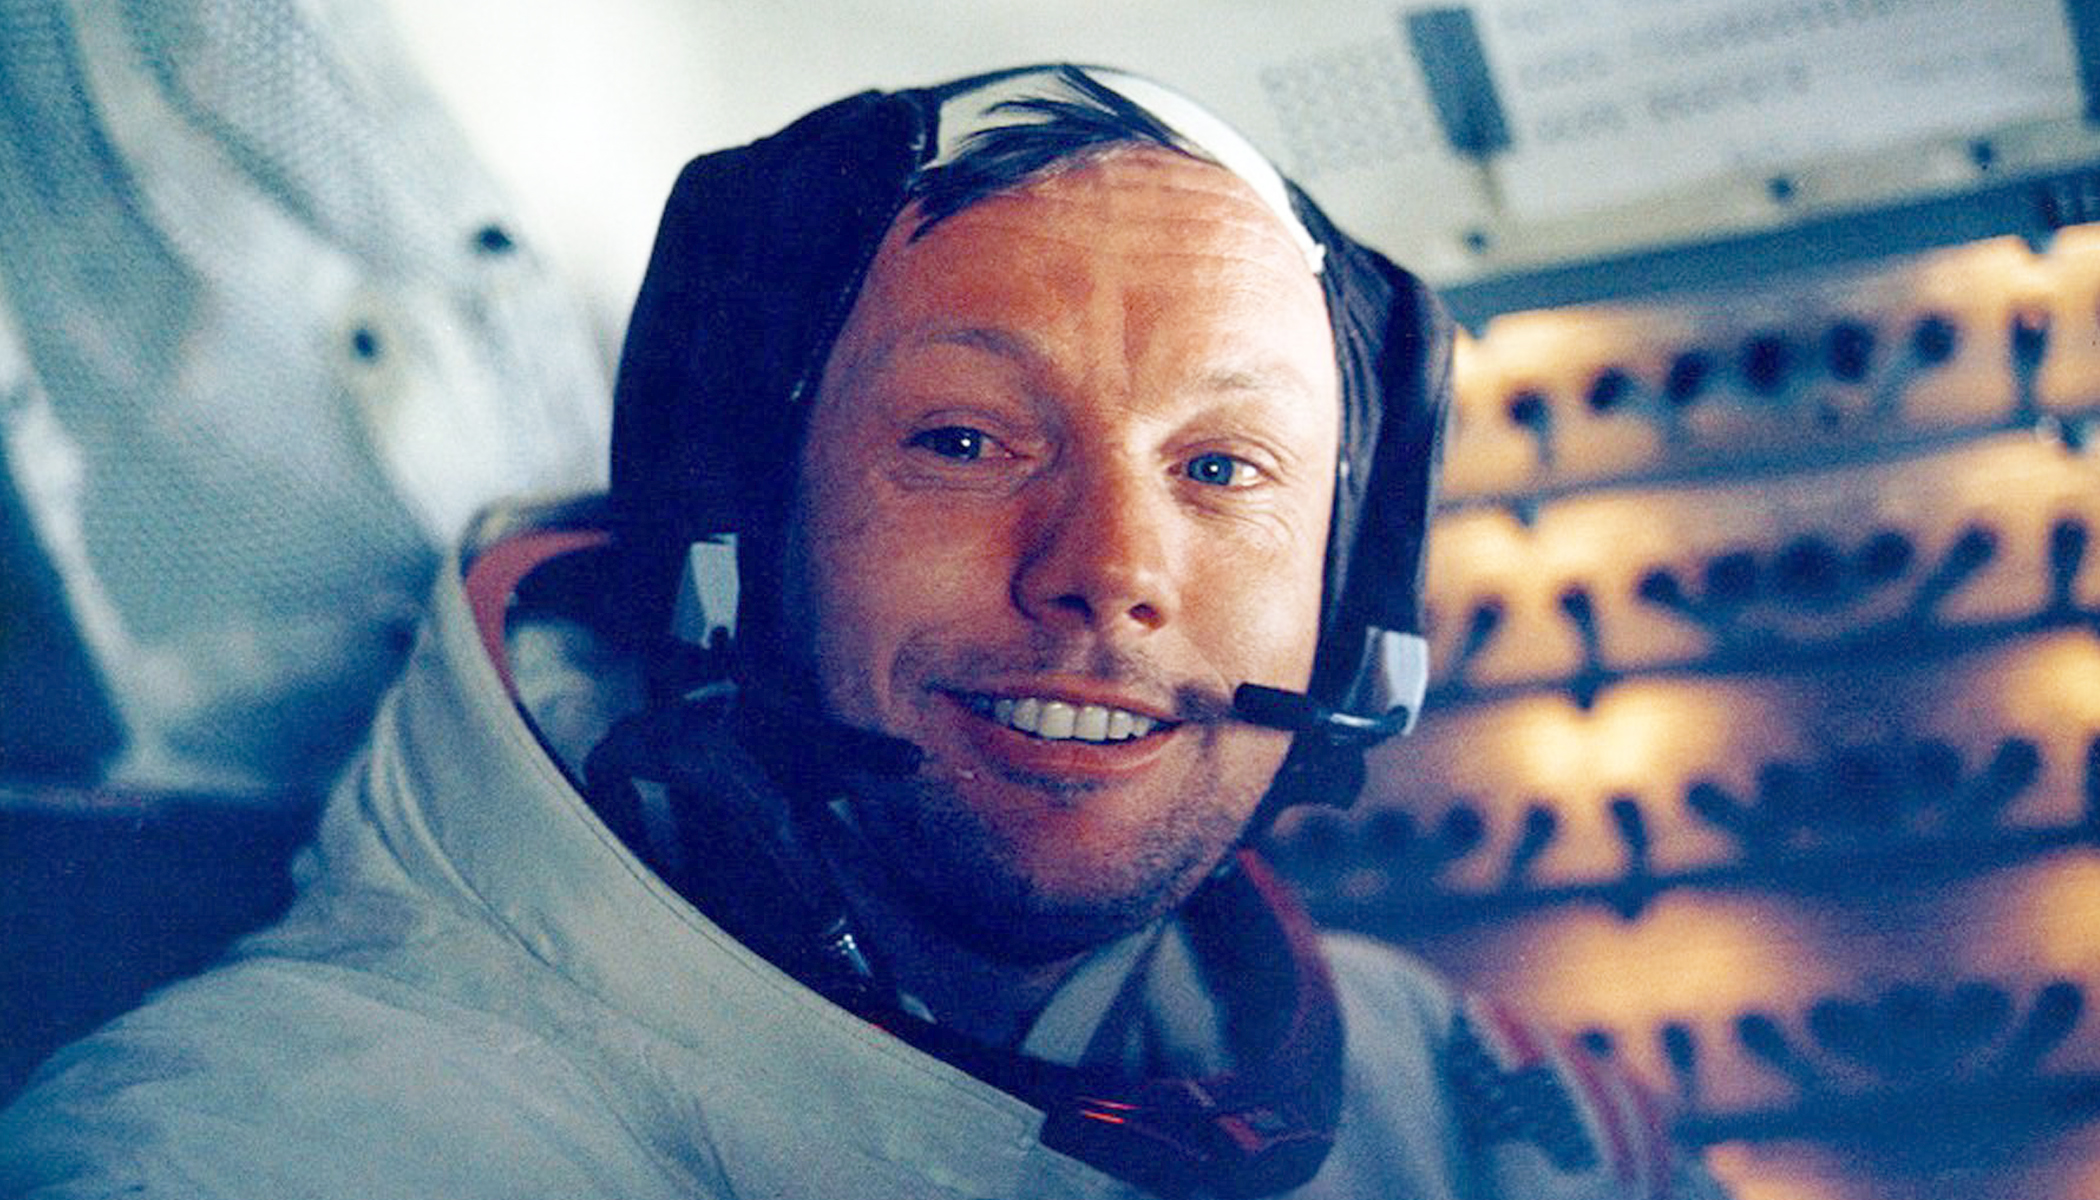 Neil Armstrong's Family Paid $6M Settlement in Secret to Cover Up Botched Surgery Claim